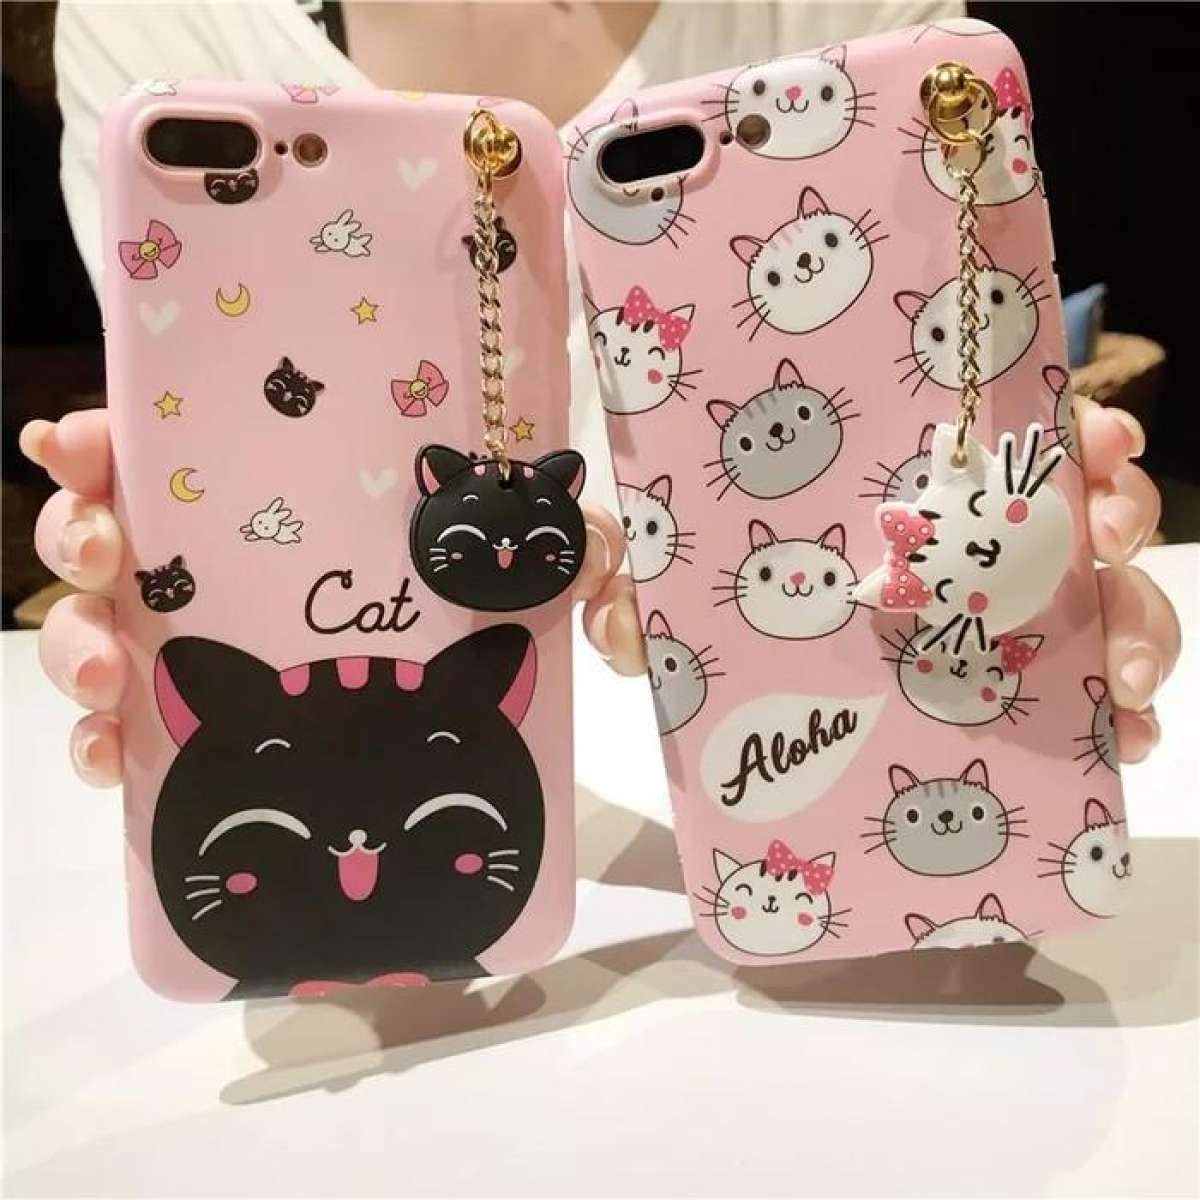 Casing Handphone Smartphone Samsung Peonia Electroplating Transparent Ultrathin Case J7 Pro 2017 S4 S6 S7 S8 S9 Note 2 3 4 8 A3 A5 A6 A7